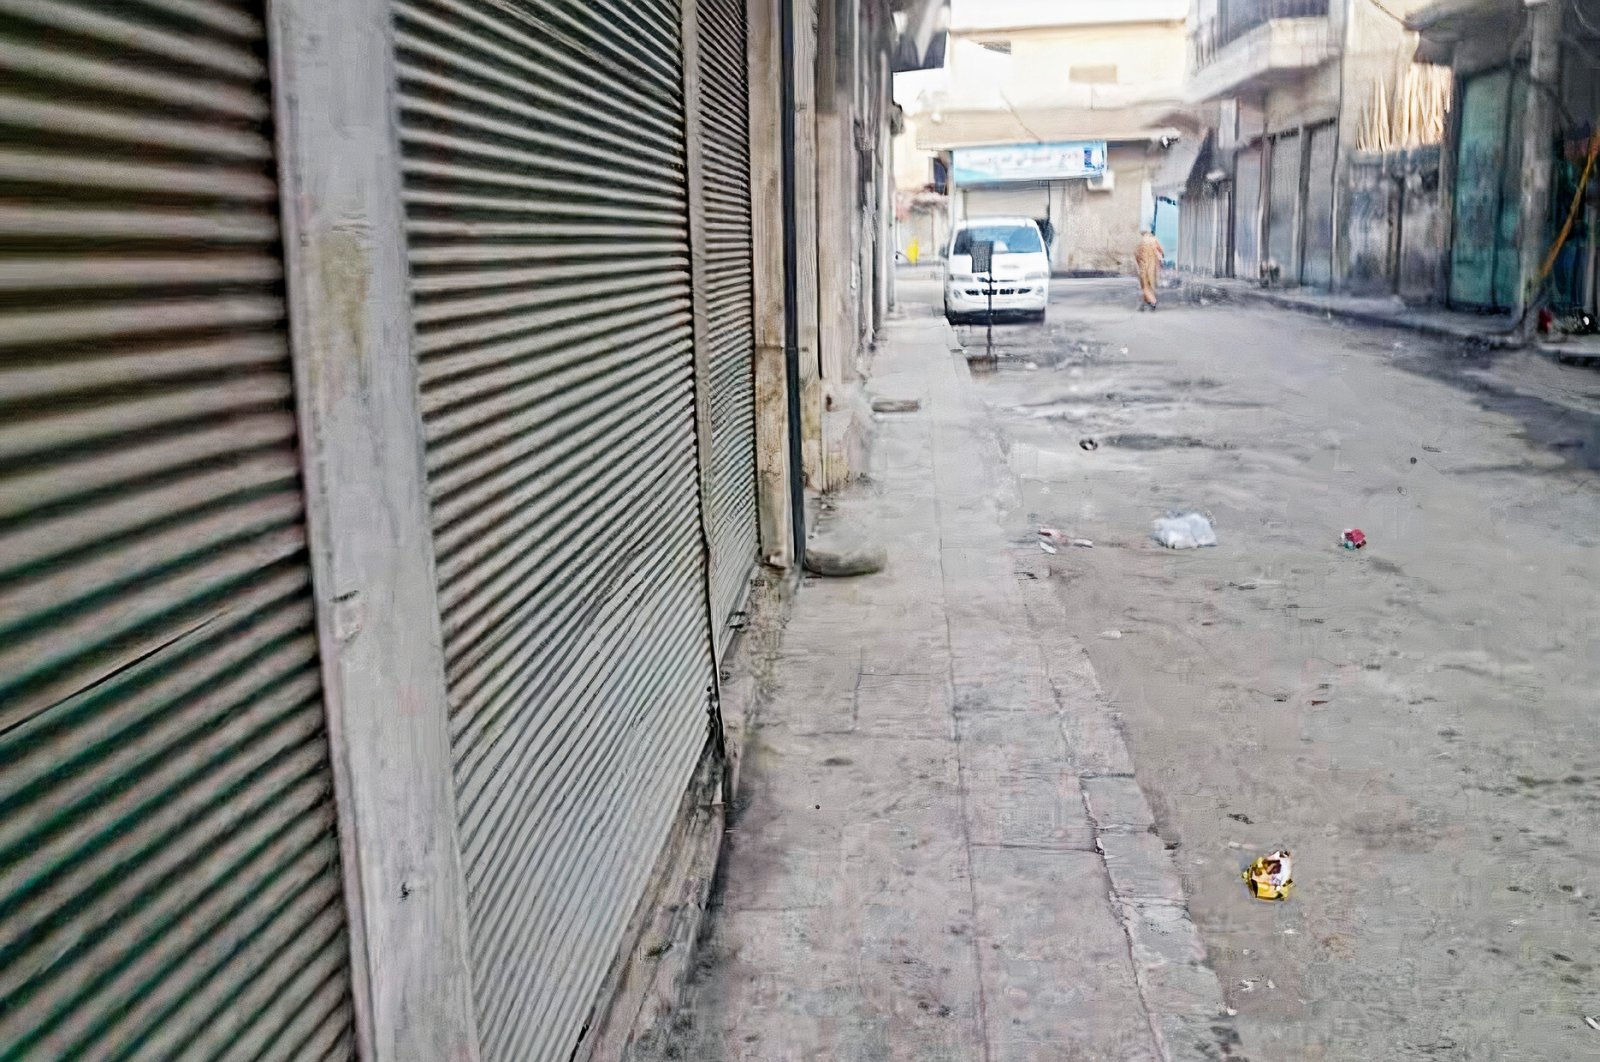 Closed shops are seen on a street in Syria's Manbij, May 31, 2021. (AA Photo)